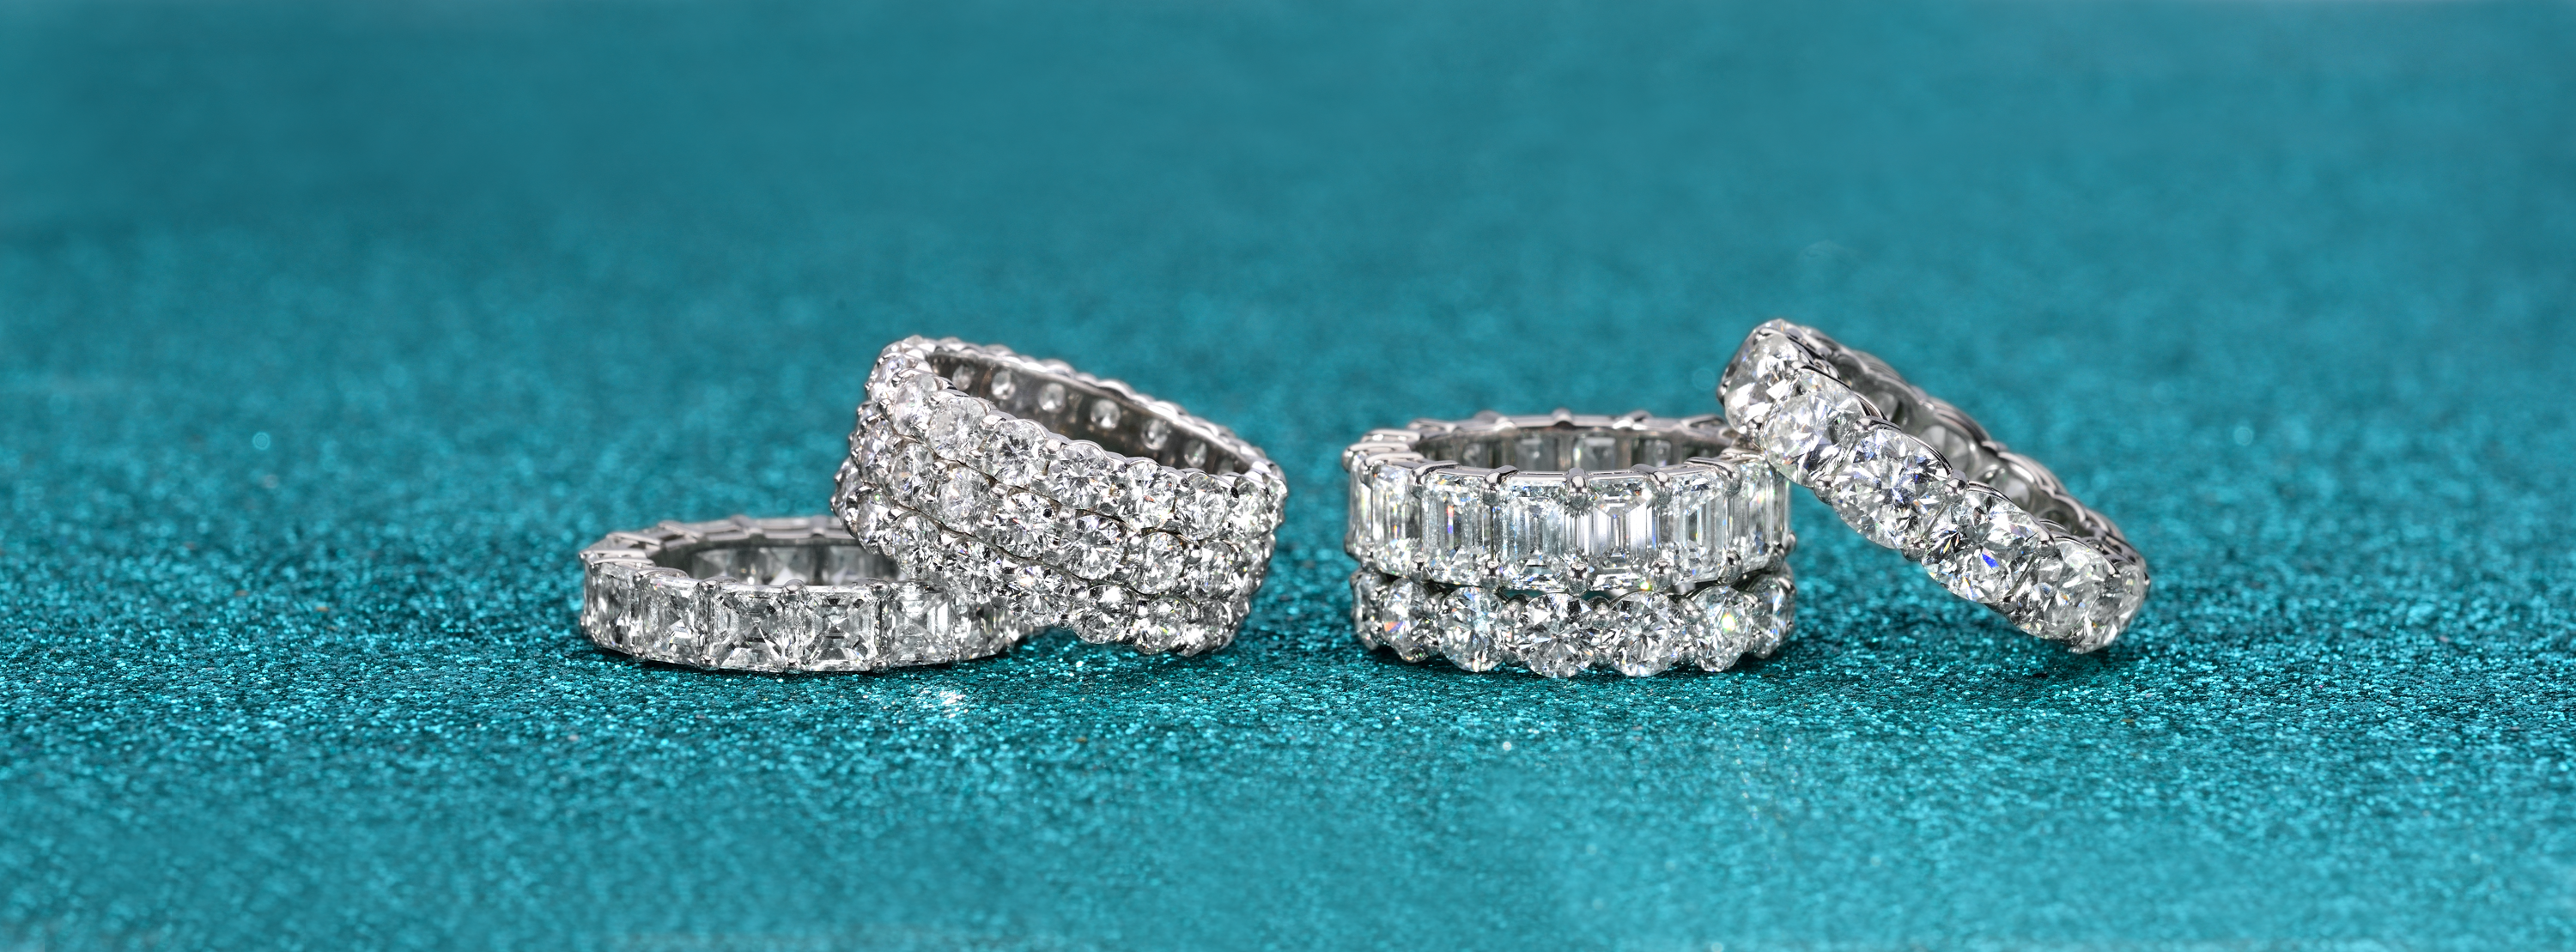 Platinum Will Save You Money On Your Wedding Bands In The Long Run